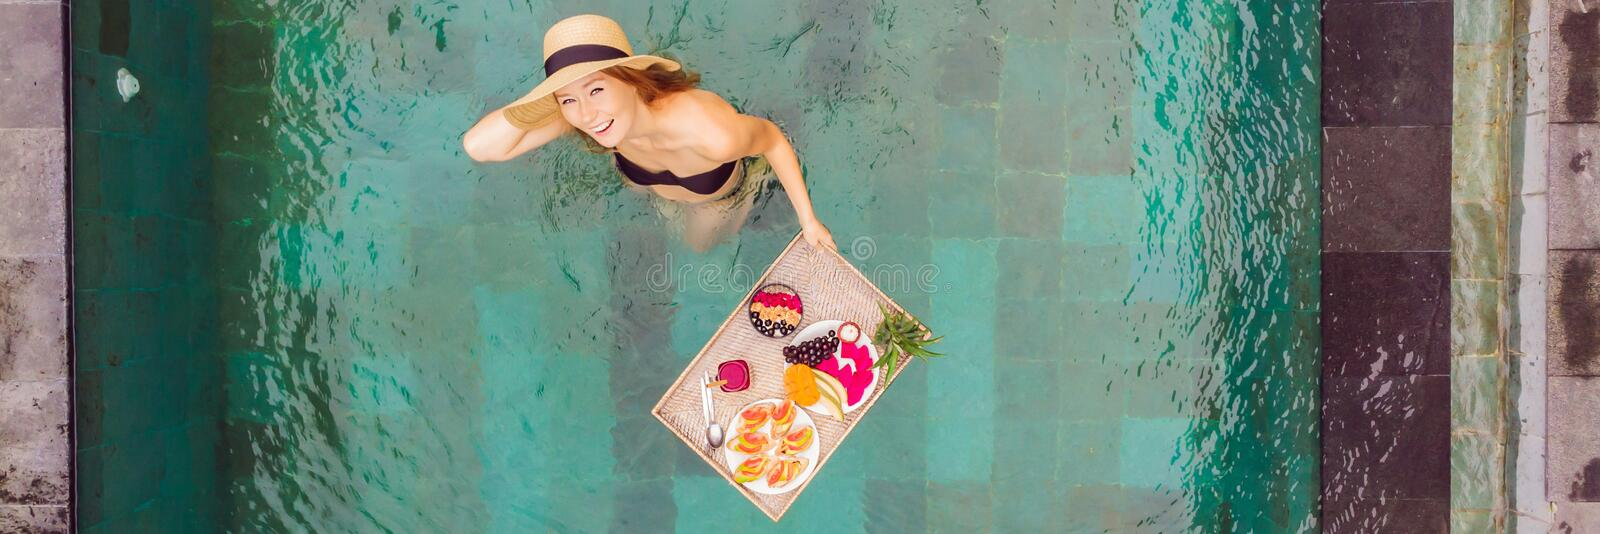 BANNER, LONG FORMAT Breakfast tray in swimming pool, floating breakfast in luxury hotel. Girl relaxing in the pool. Drinking smoothies and eating fruit plate royalty free stock photo